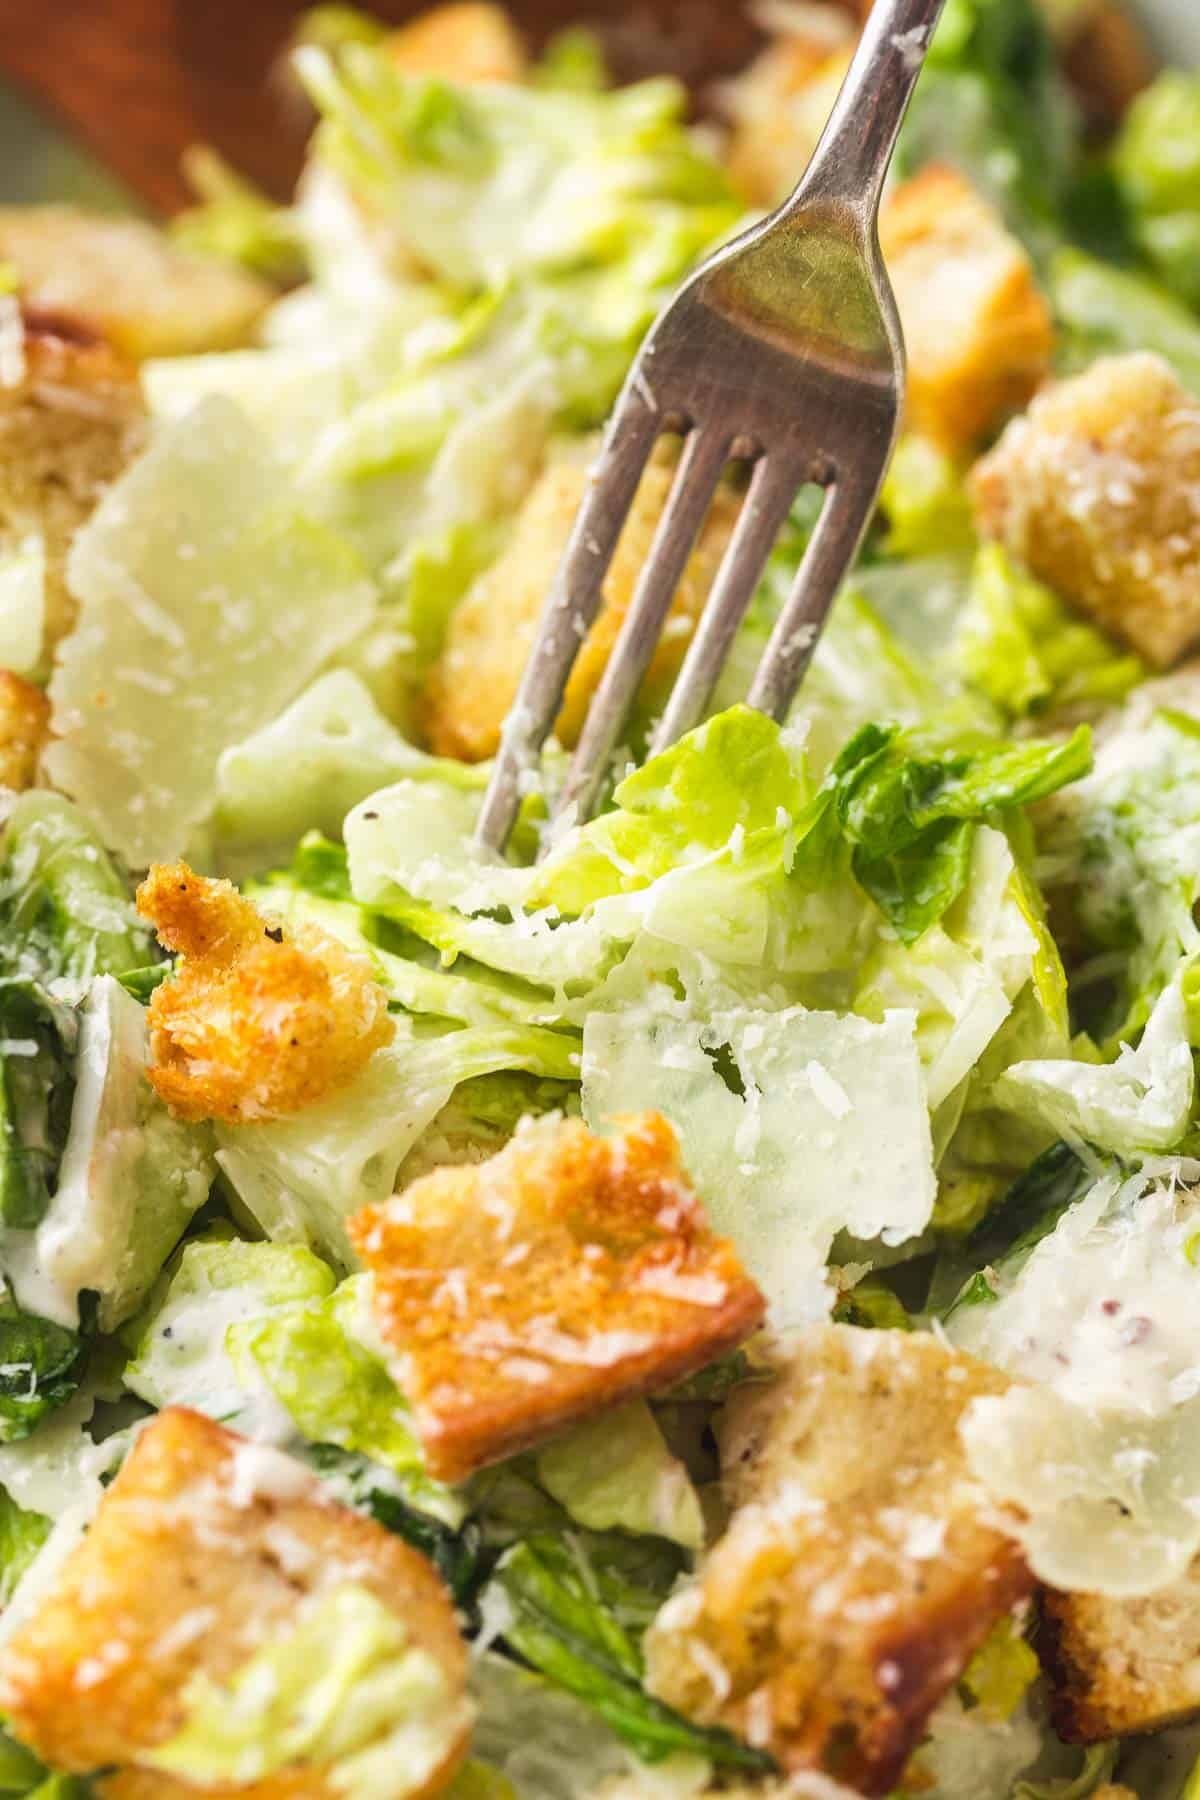 Eating Caesar salad with a fork